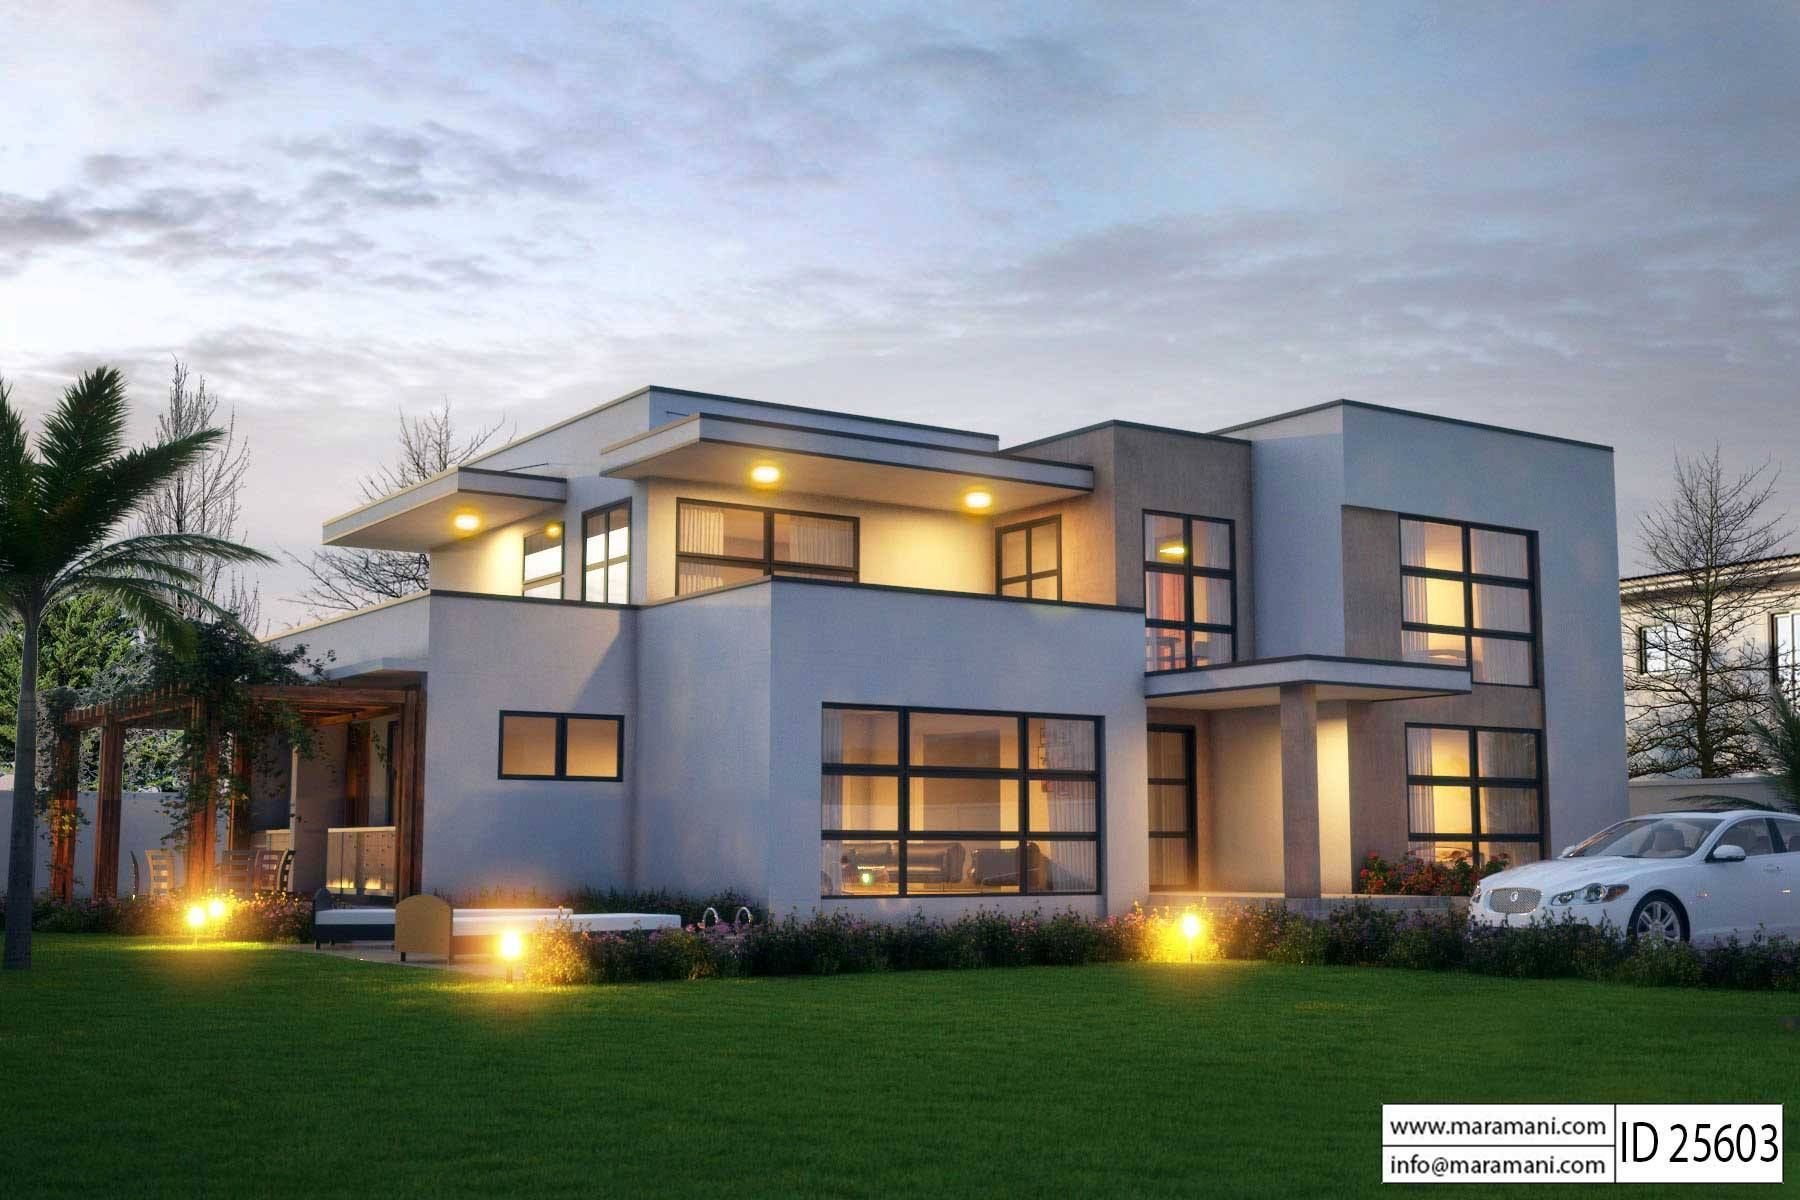 5 Bedroom House Design  ID 25603 in 2019  Dream house 2